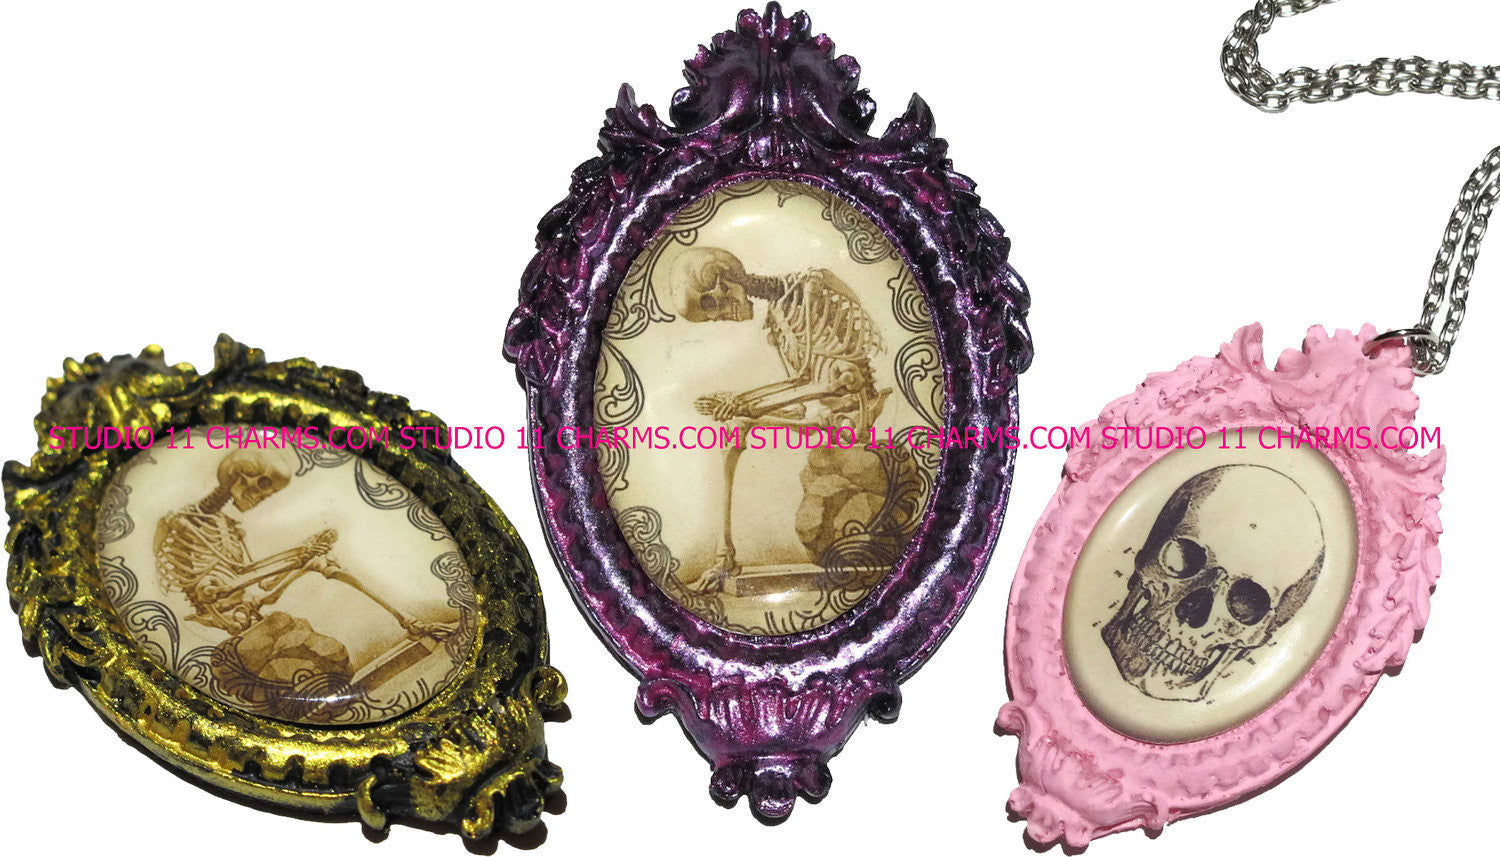 40x30, 18x25, 13X18 Resin Cameo LOW DOME Cabochon. Anatomy 1 Clock